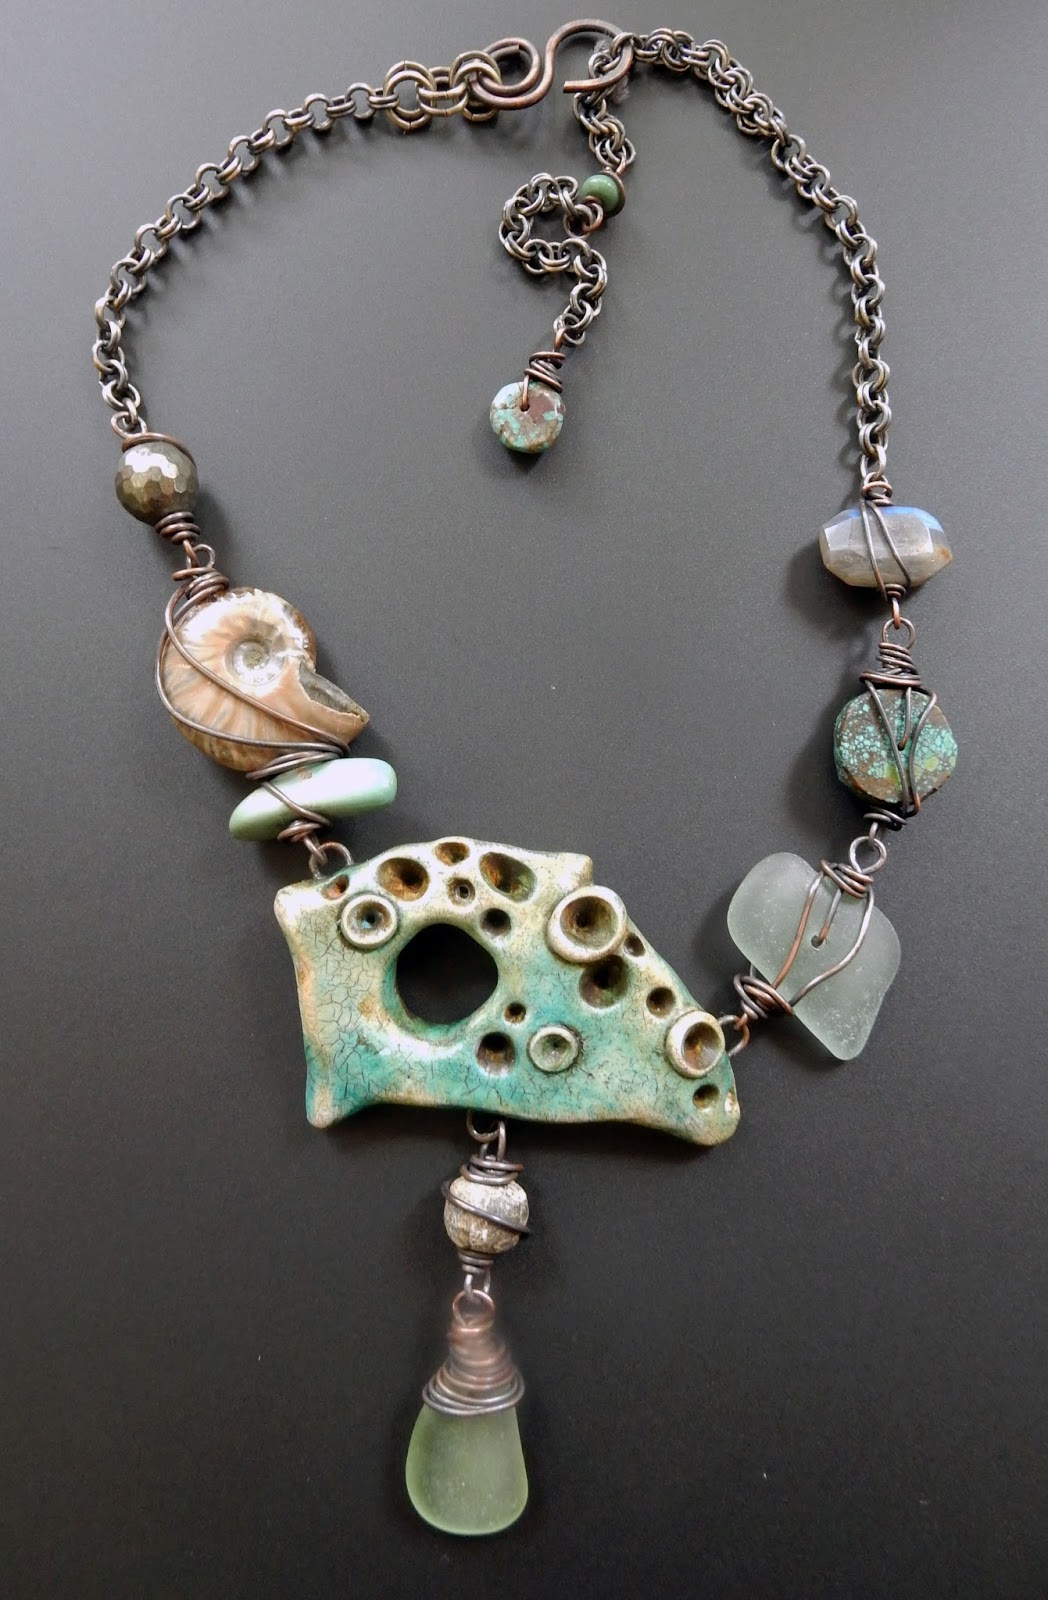 and jewelry my jewelry drilling sea glass stones fossils 5390